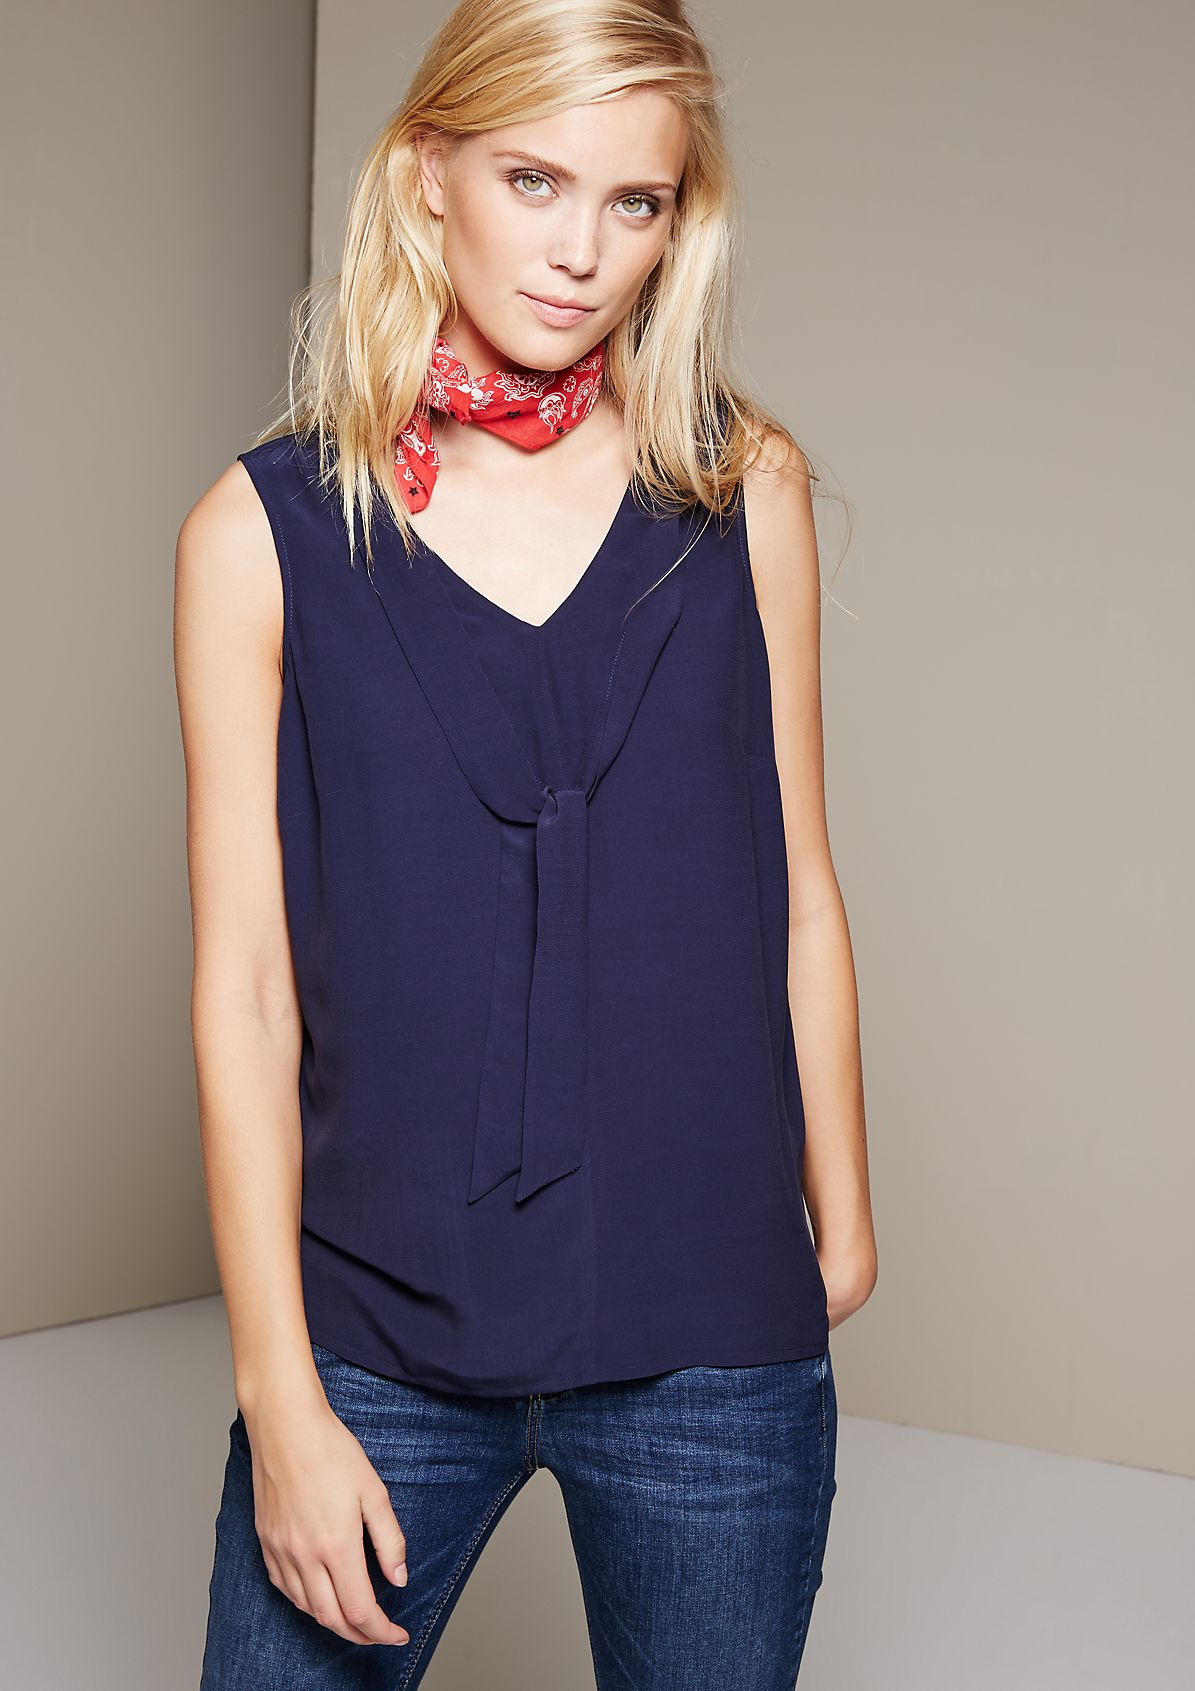 Delicate blouse top made of lightweight crêpe with decorative ties from s.Oliver